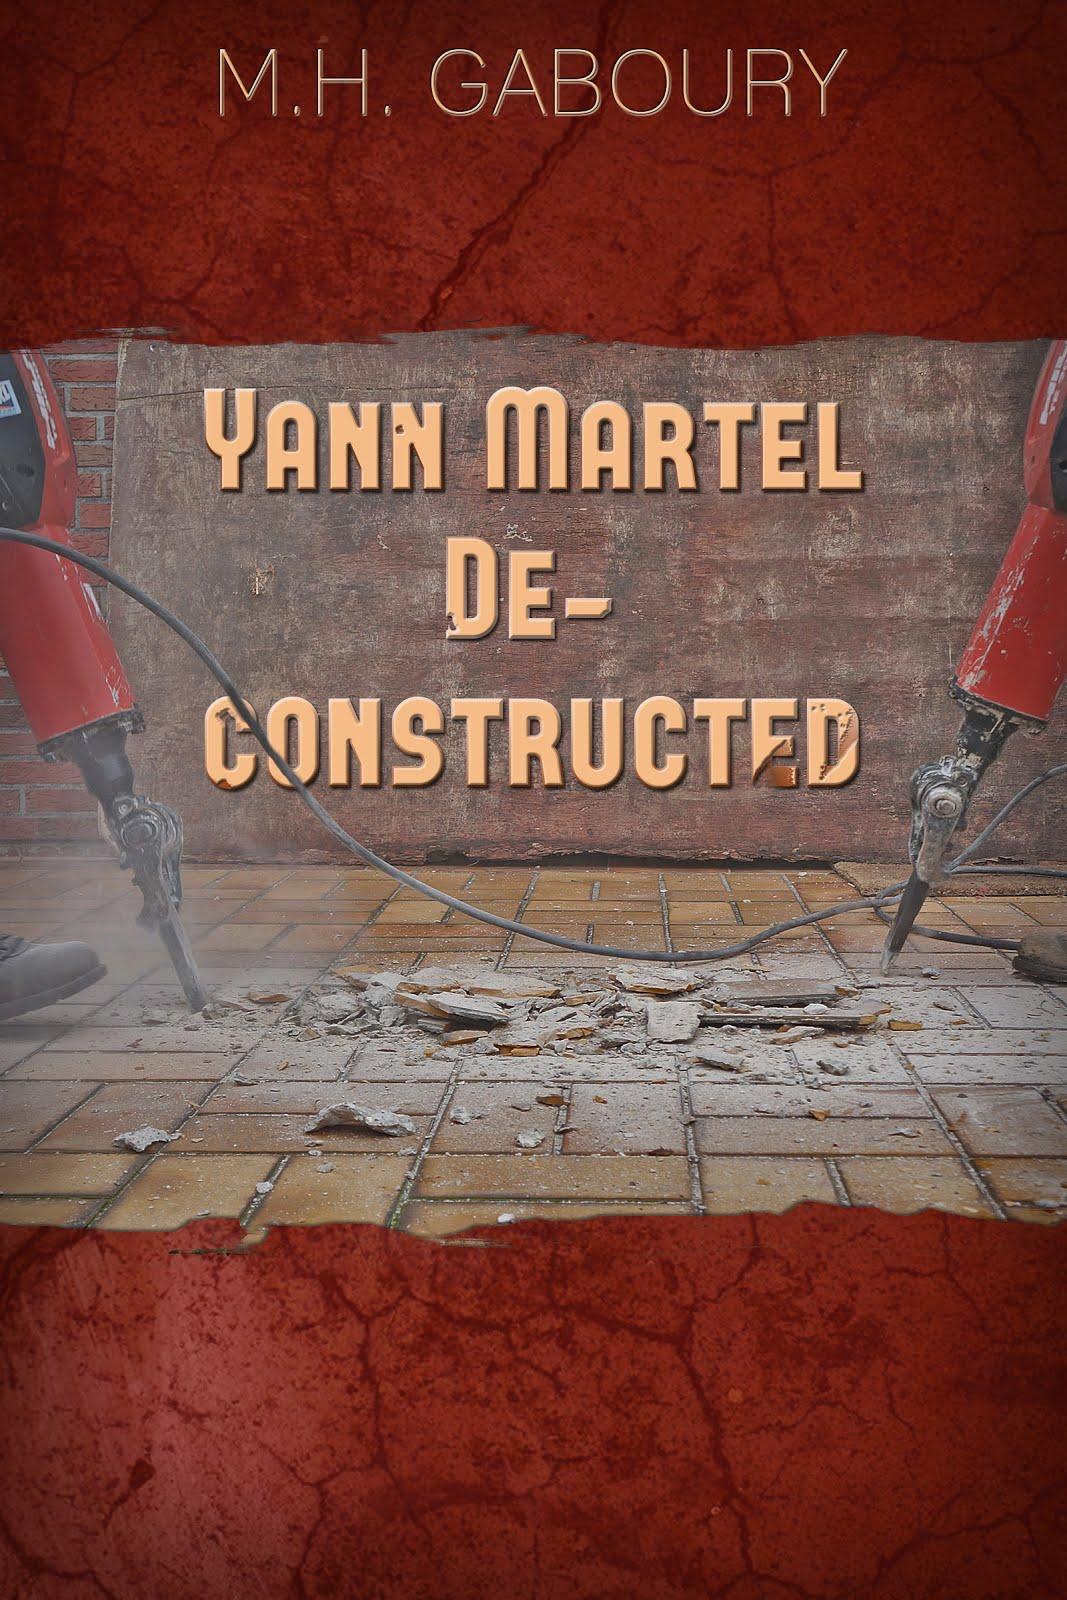 Yann Martel Deconstructed